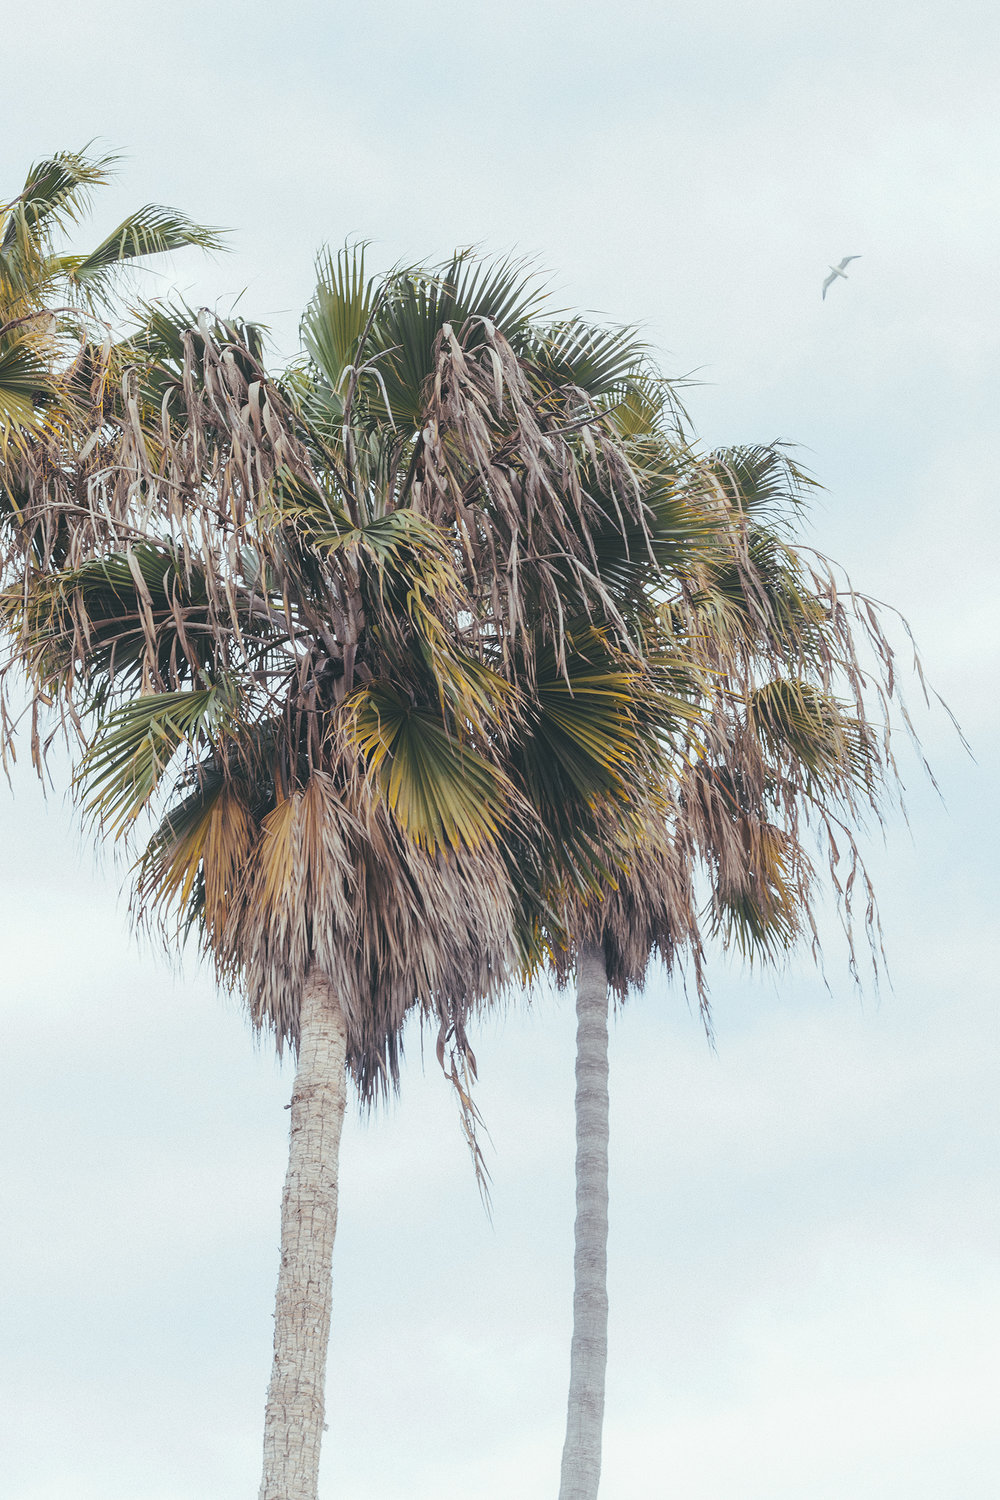 Palm Trees / Nature Photography / Venice Beach Travel / Kelly Fiance Creative